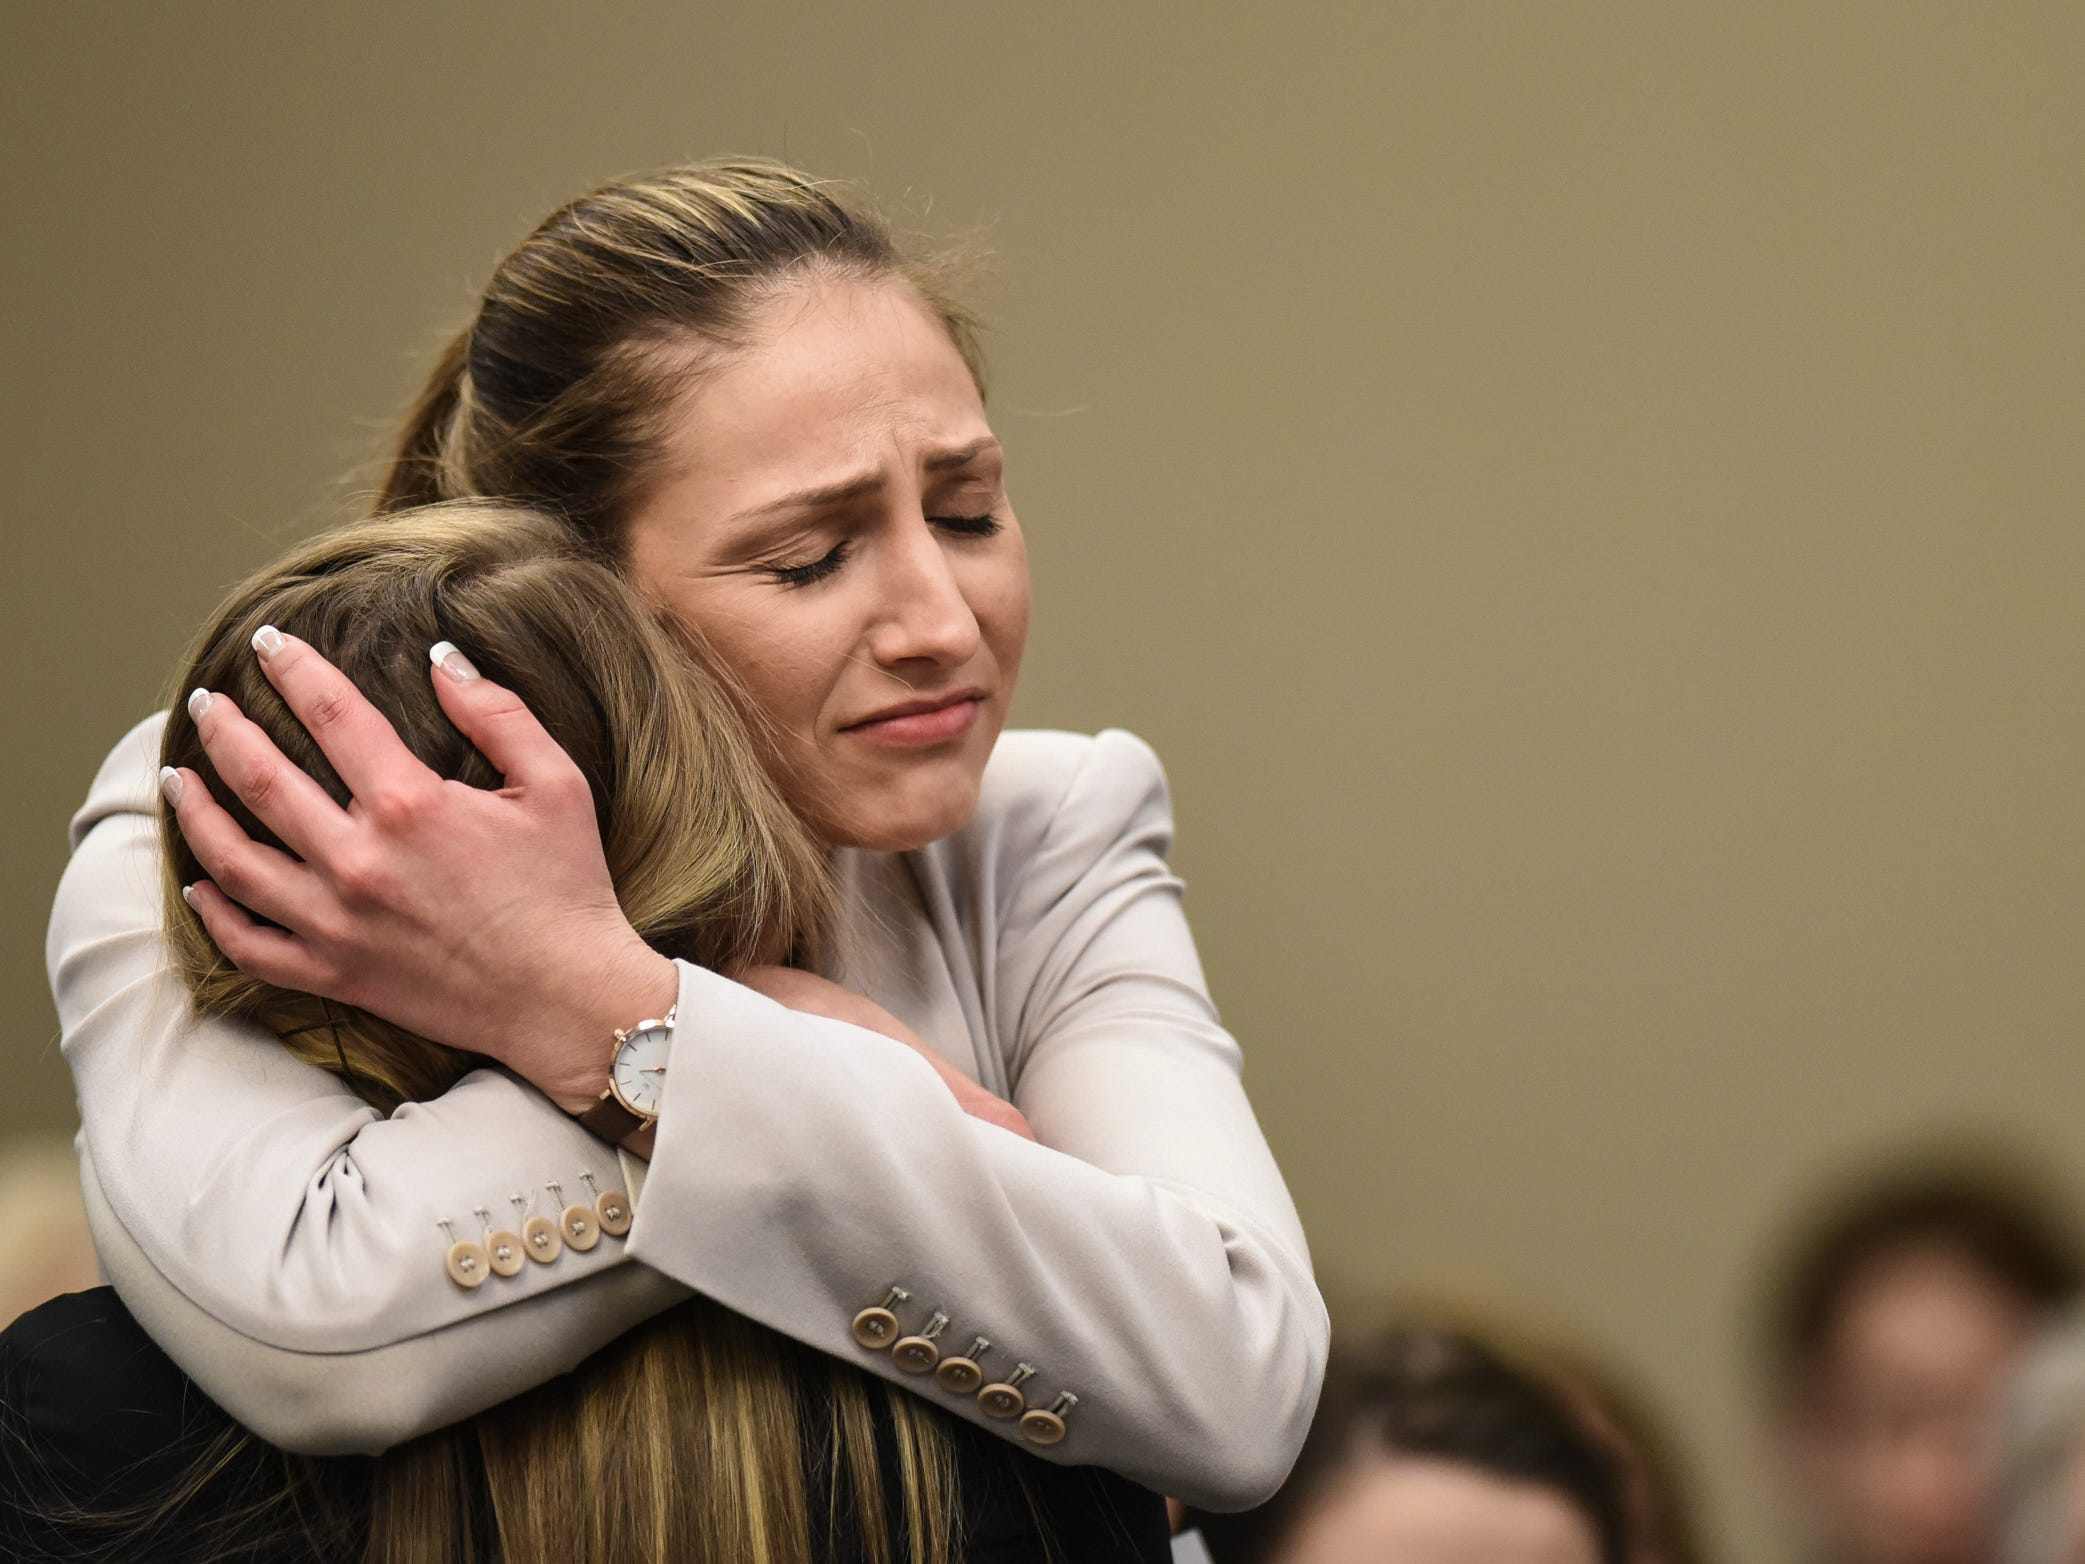 Kyle Stephens hugs Emily Morales after Morales gave her victim impact statement, Tuesday, Jan. 23, 2018, during the sixth day of victim impact statements in Ingham County Circuit Court.  Nassar is expected to be sentenced on seven sexual assault charges this week.